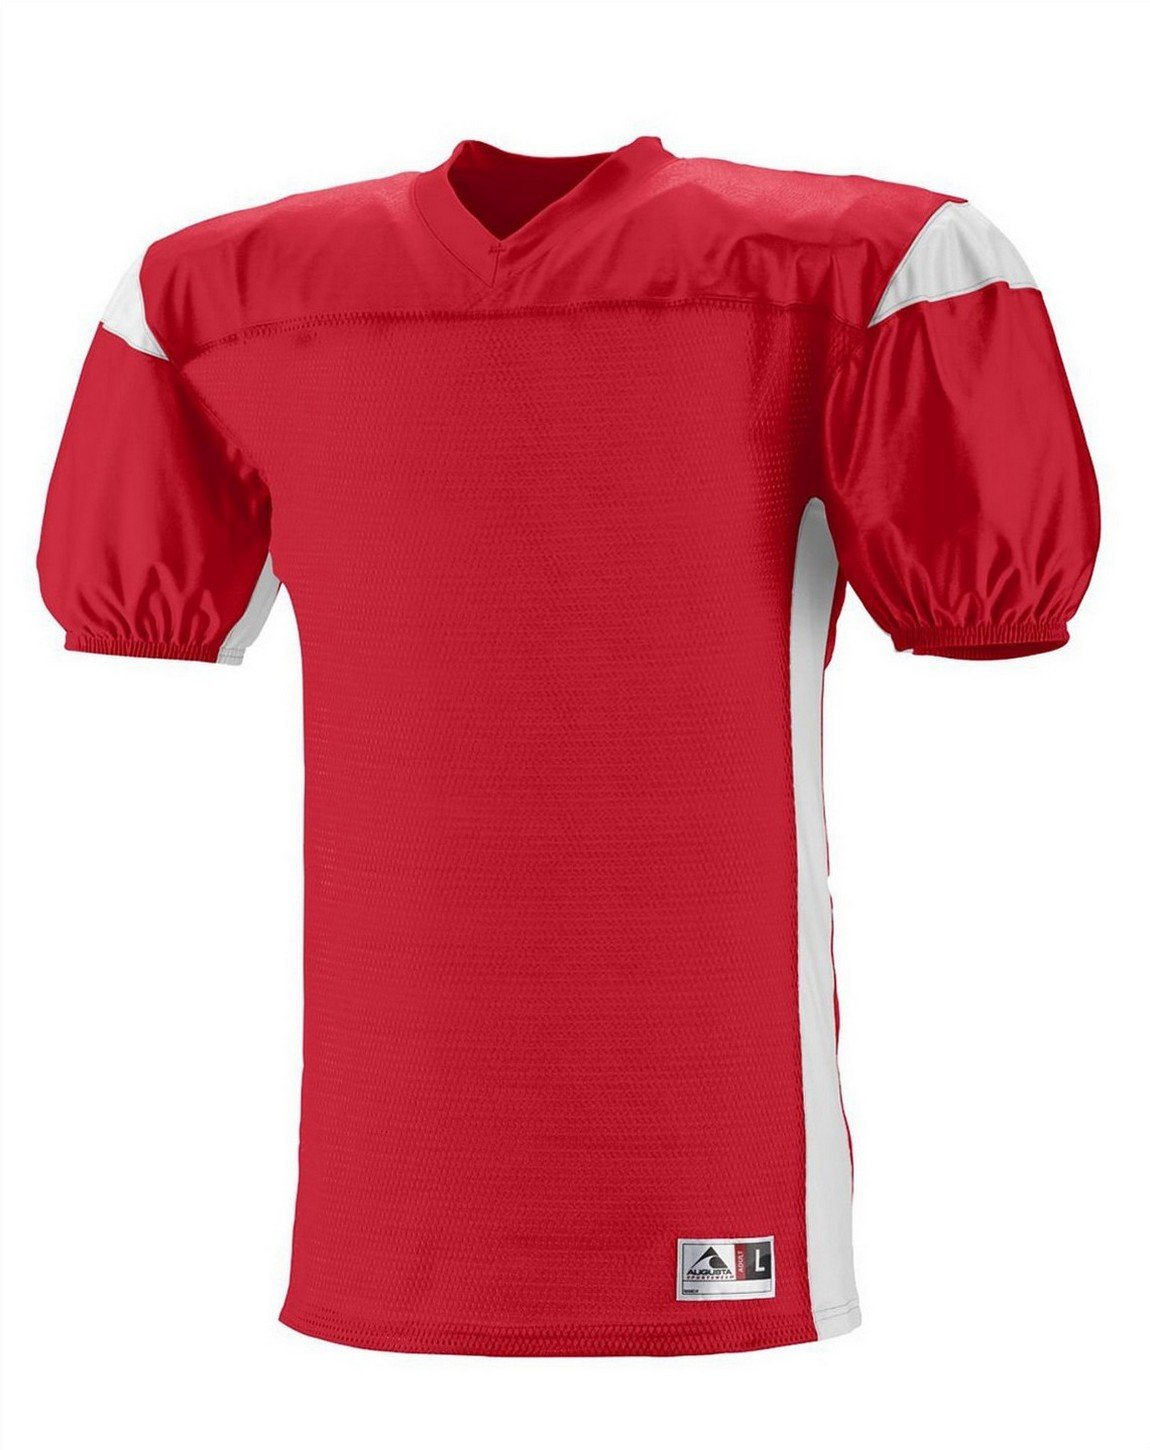 9521 AG YTH DOMINATOR MESH JERSEY RED/ WHITE L